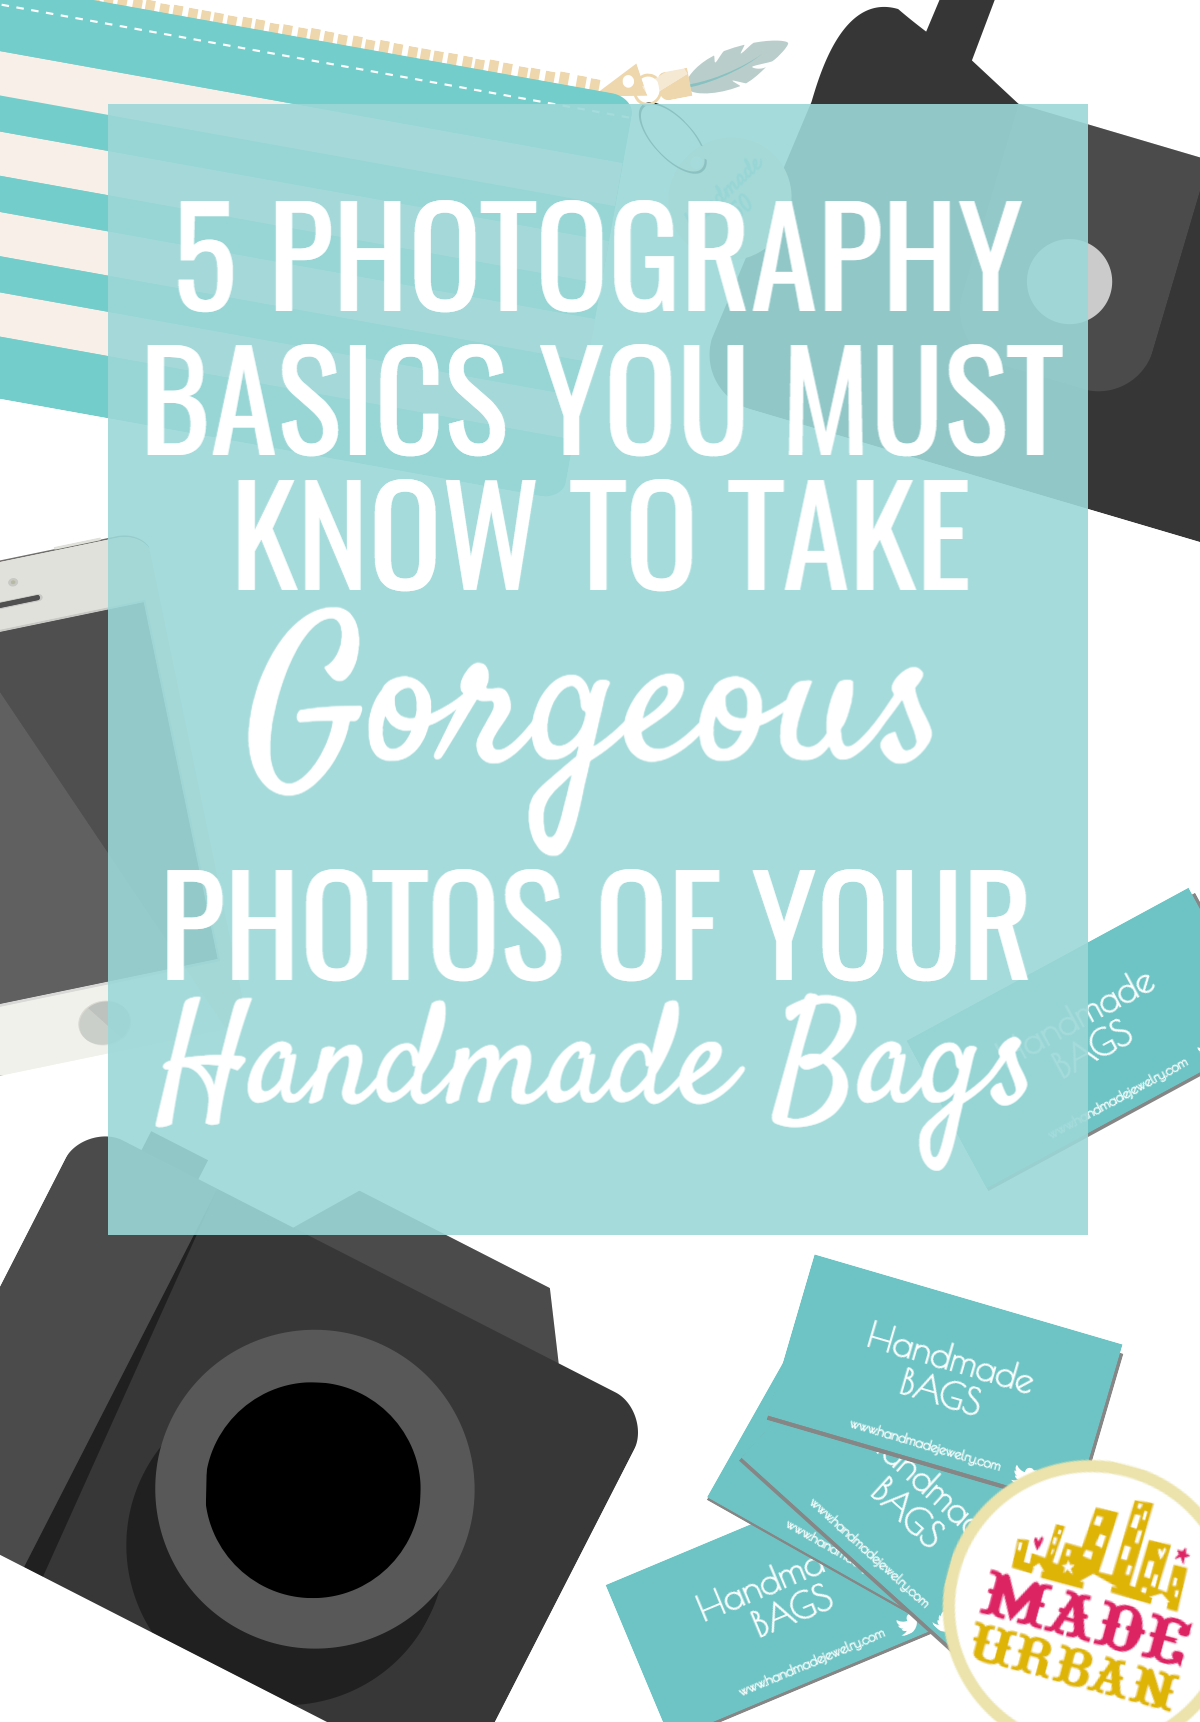 If you want that bag you just made to stand out and sell online, your photos must catch the eye. Here are 5 tips to follow when photographing your product.